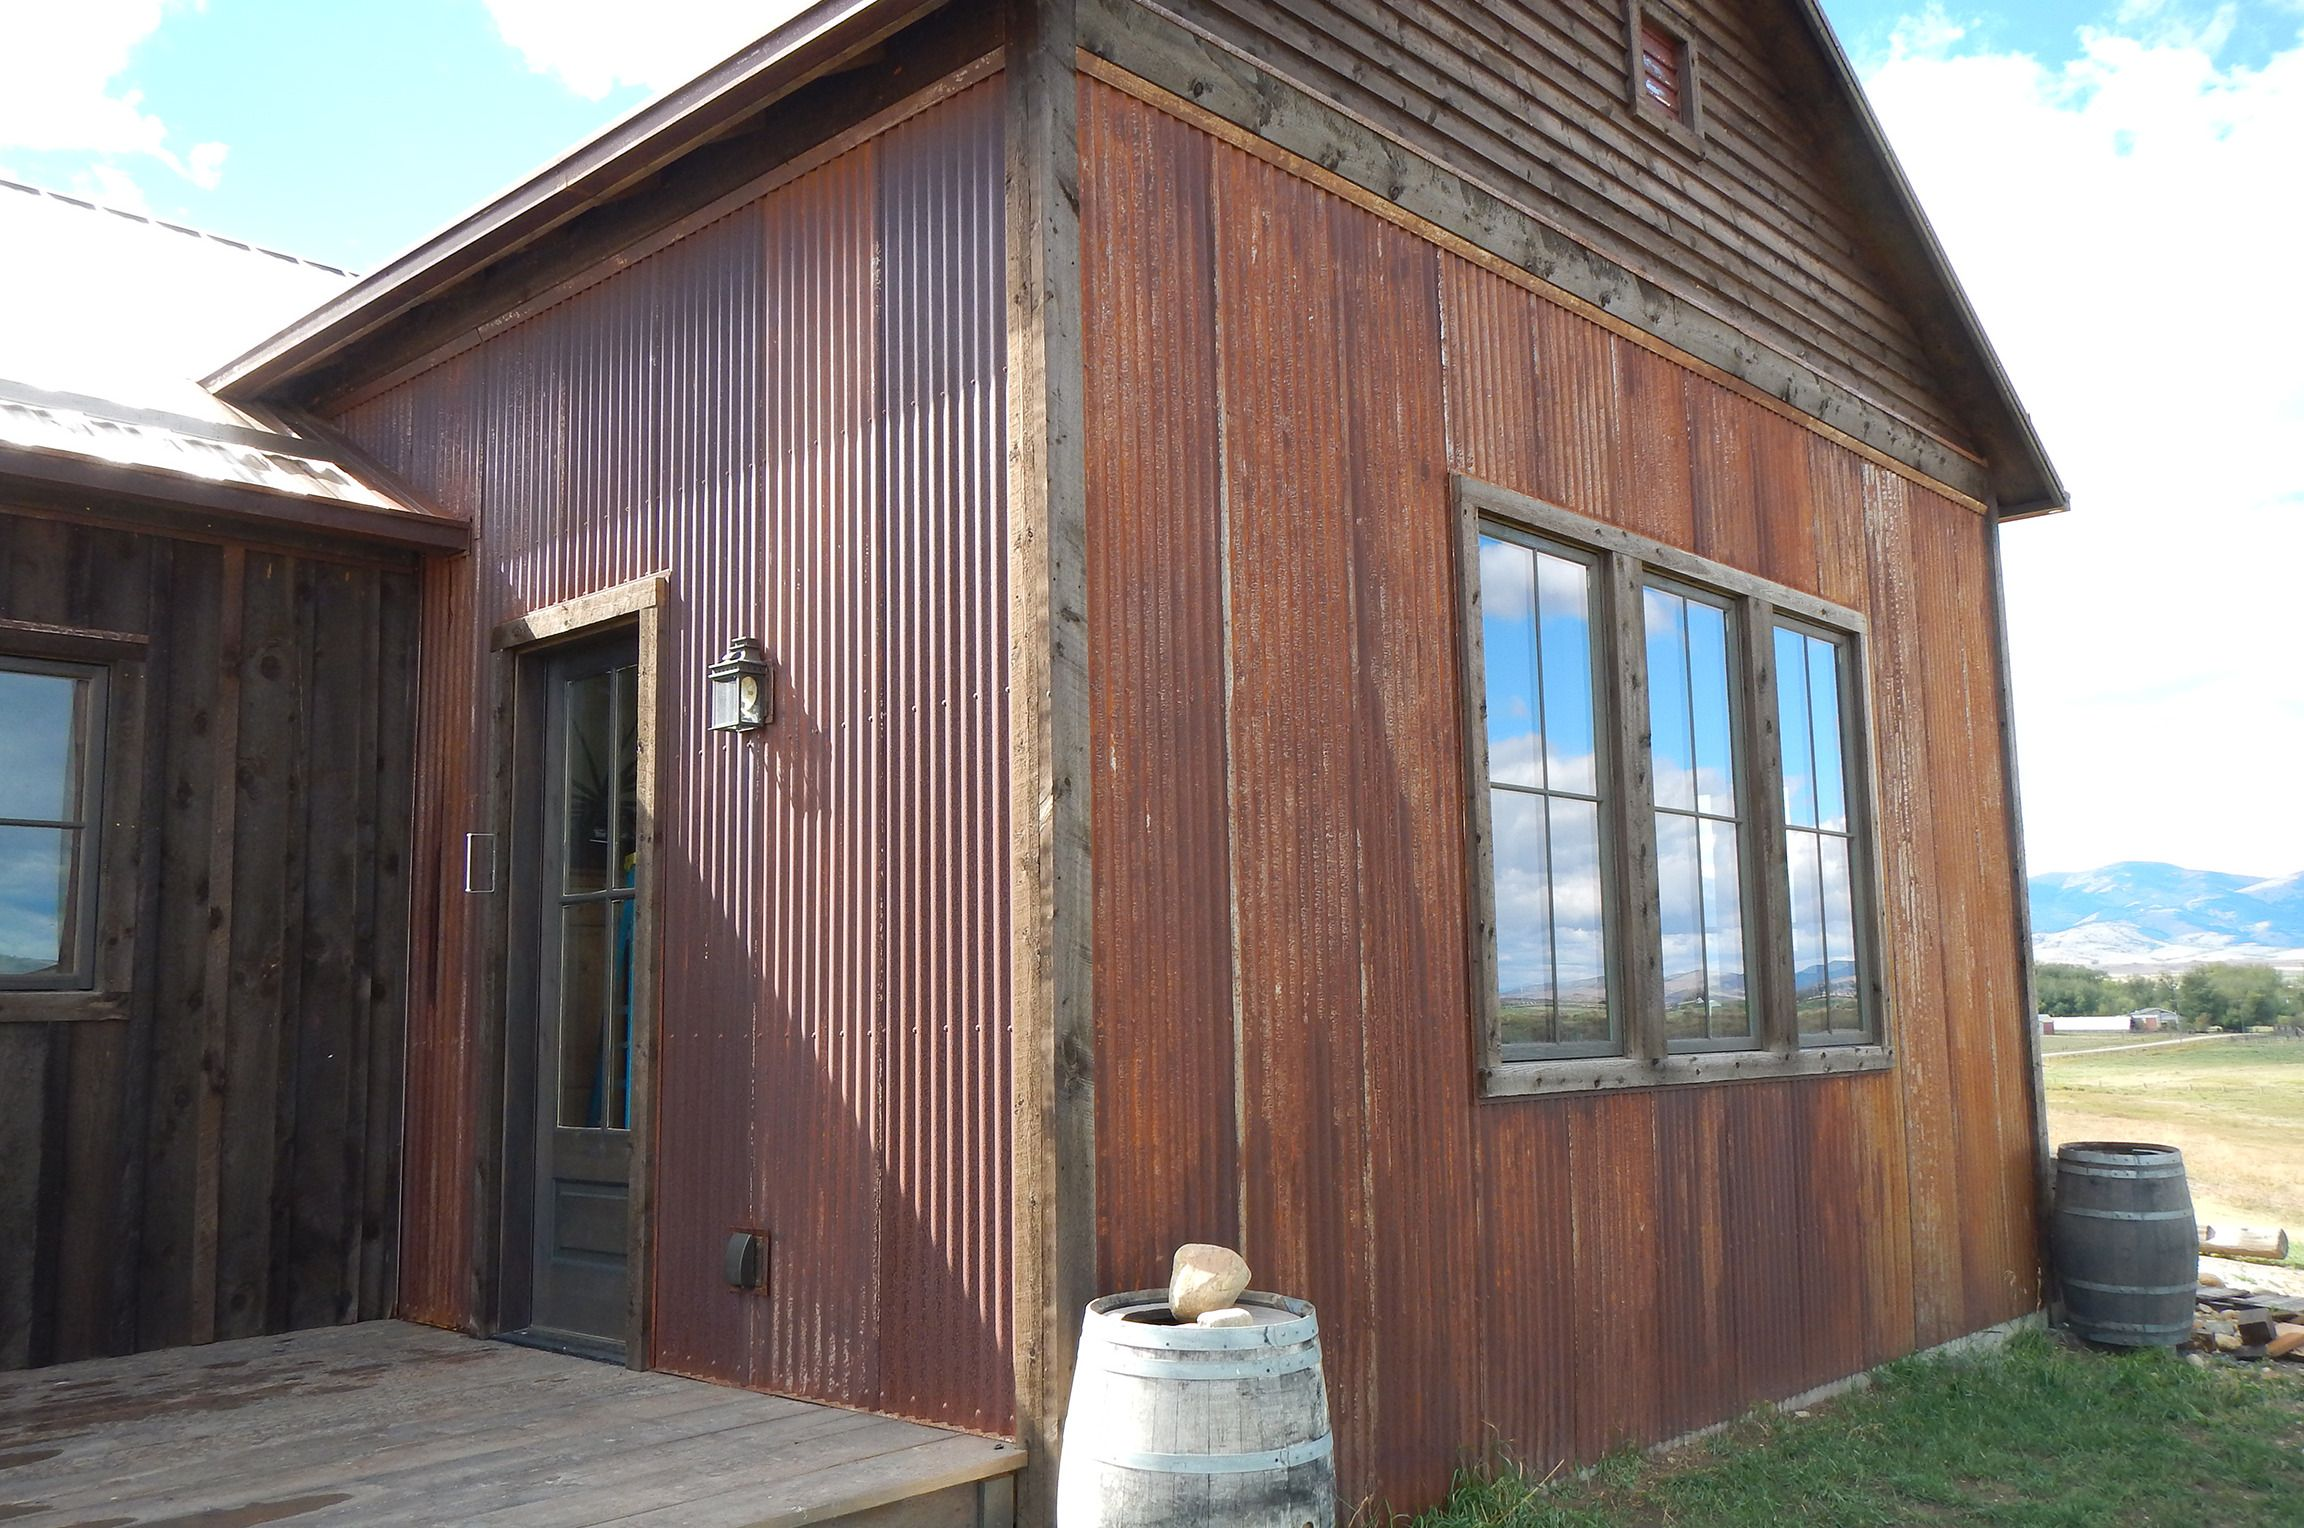 Revestimiento Exterior Paneles Rustic Steel Siding 2 1 2 Corrugated In Truten By